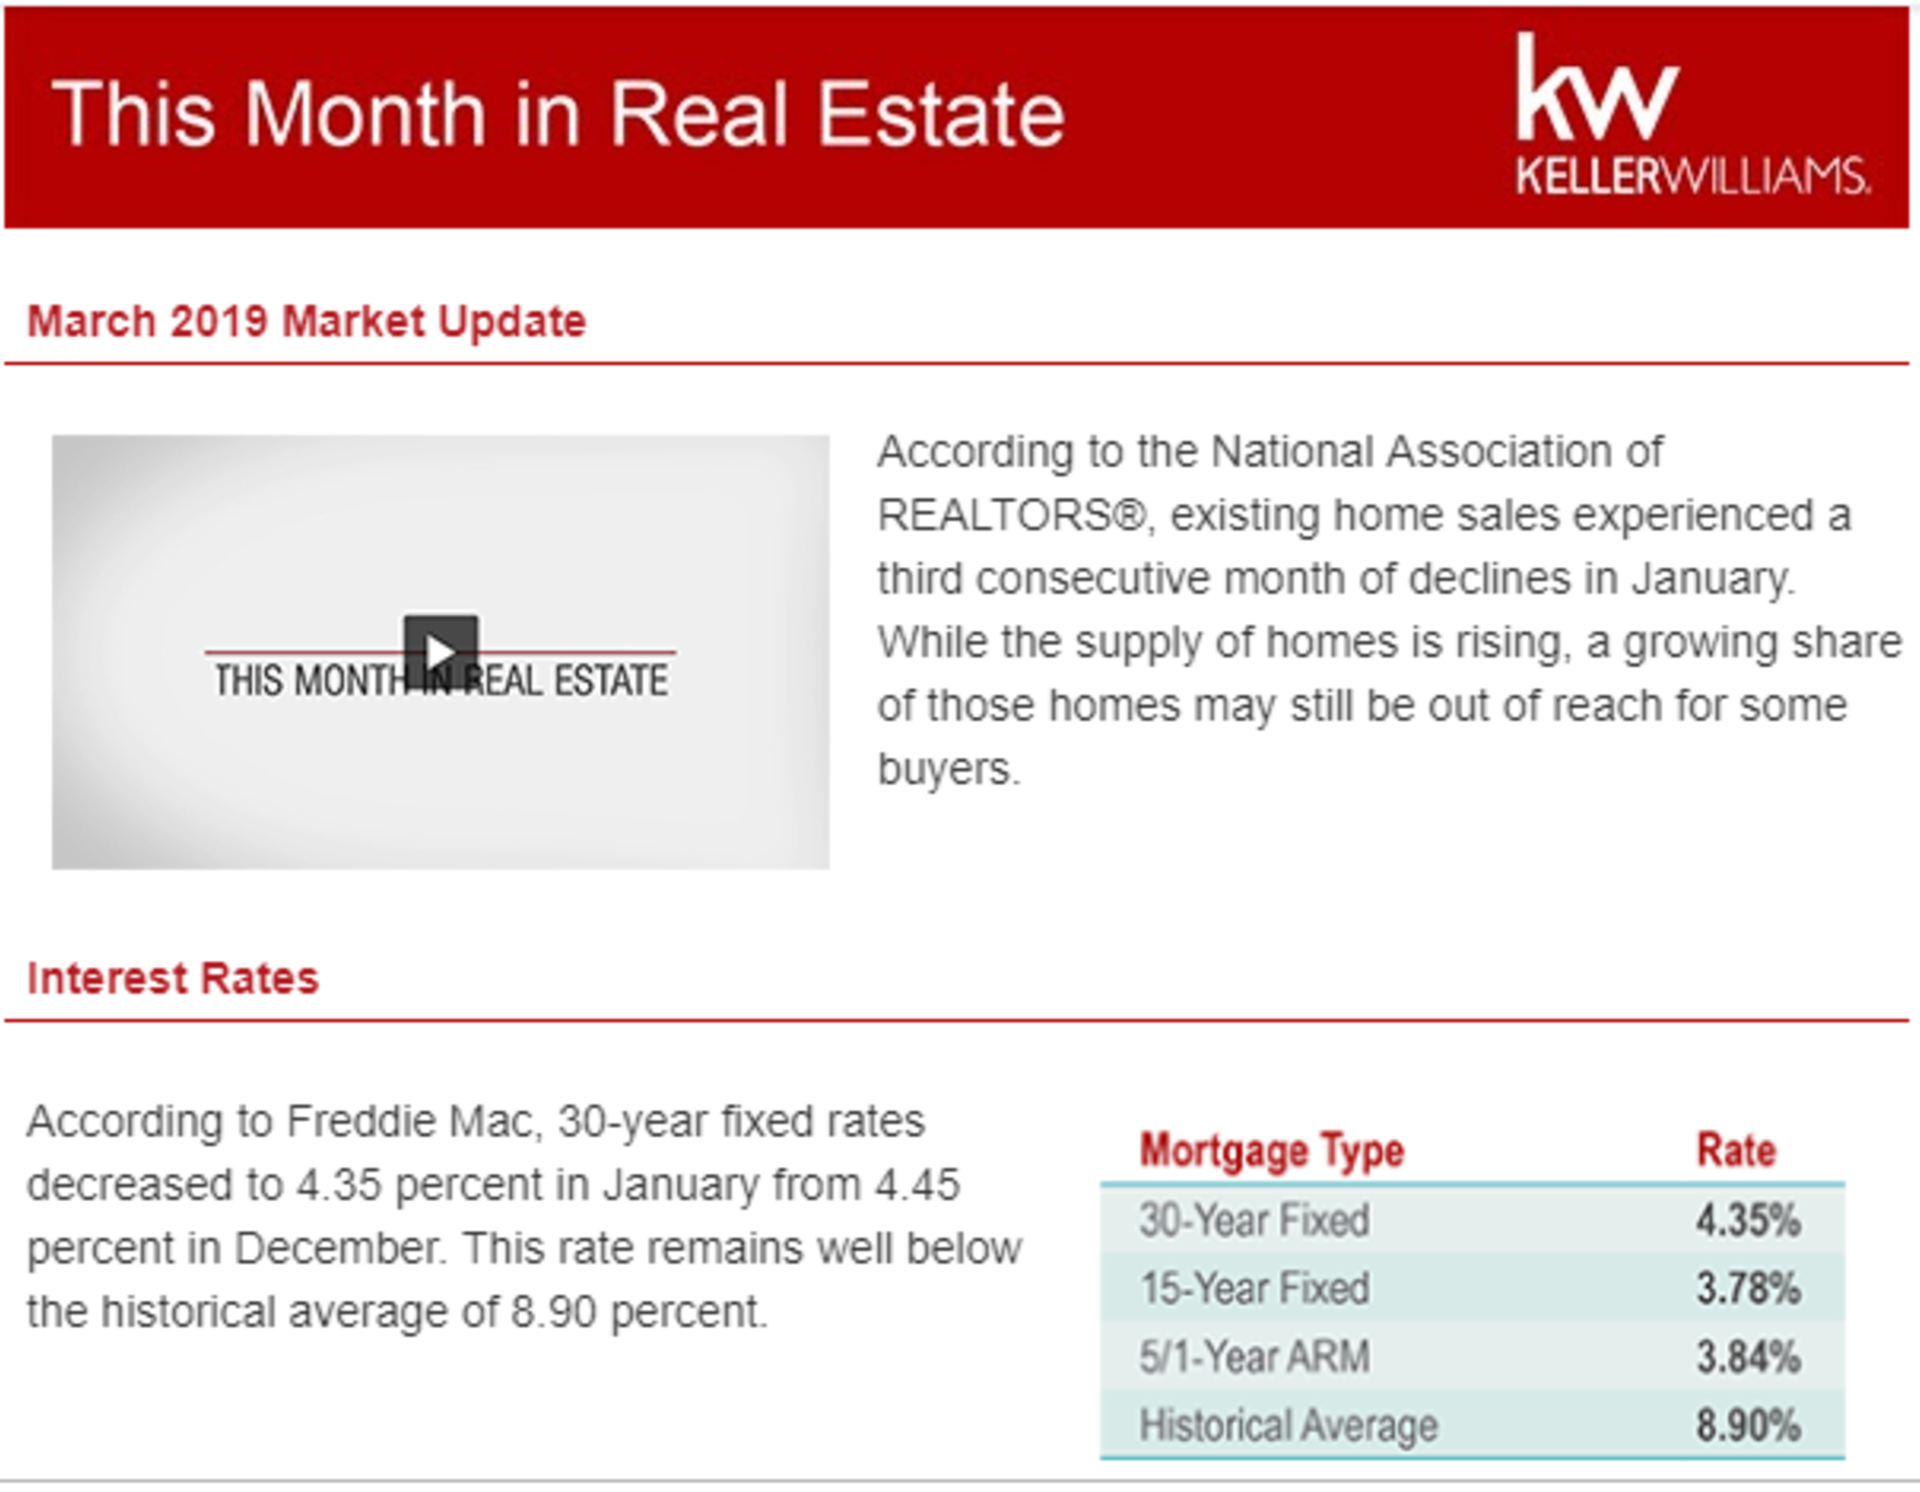 Beth Perez This Month in Real Estate for March 2019